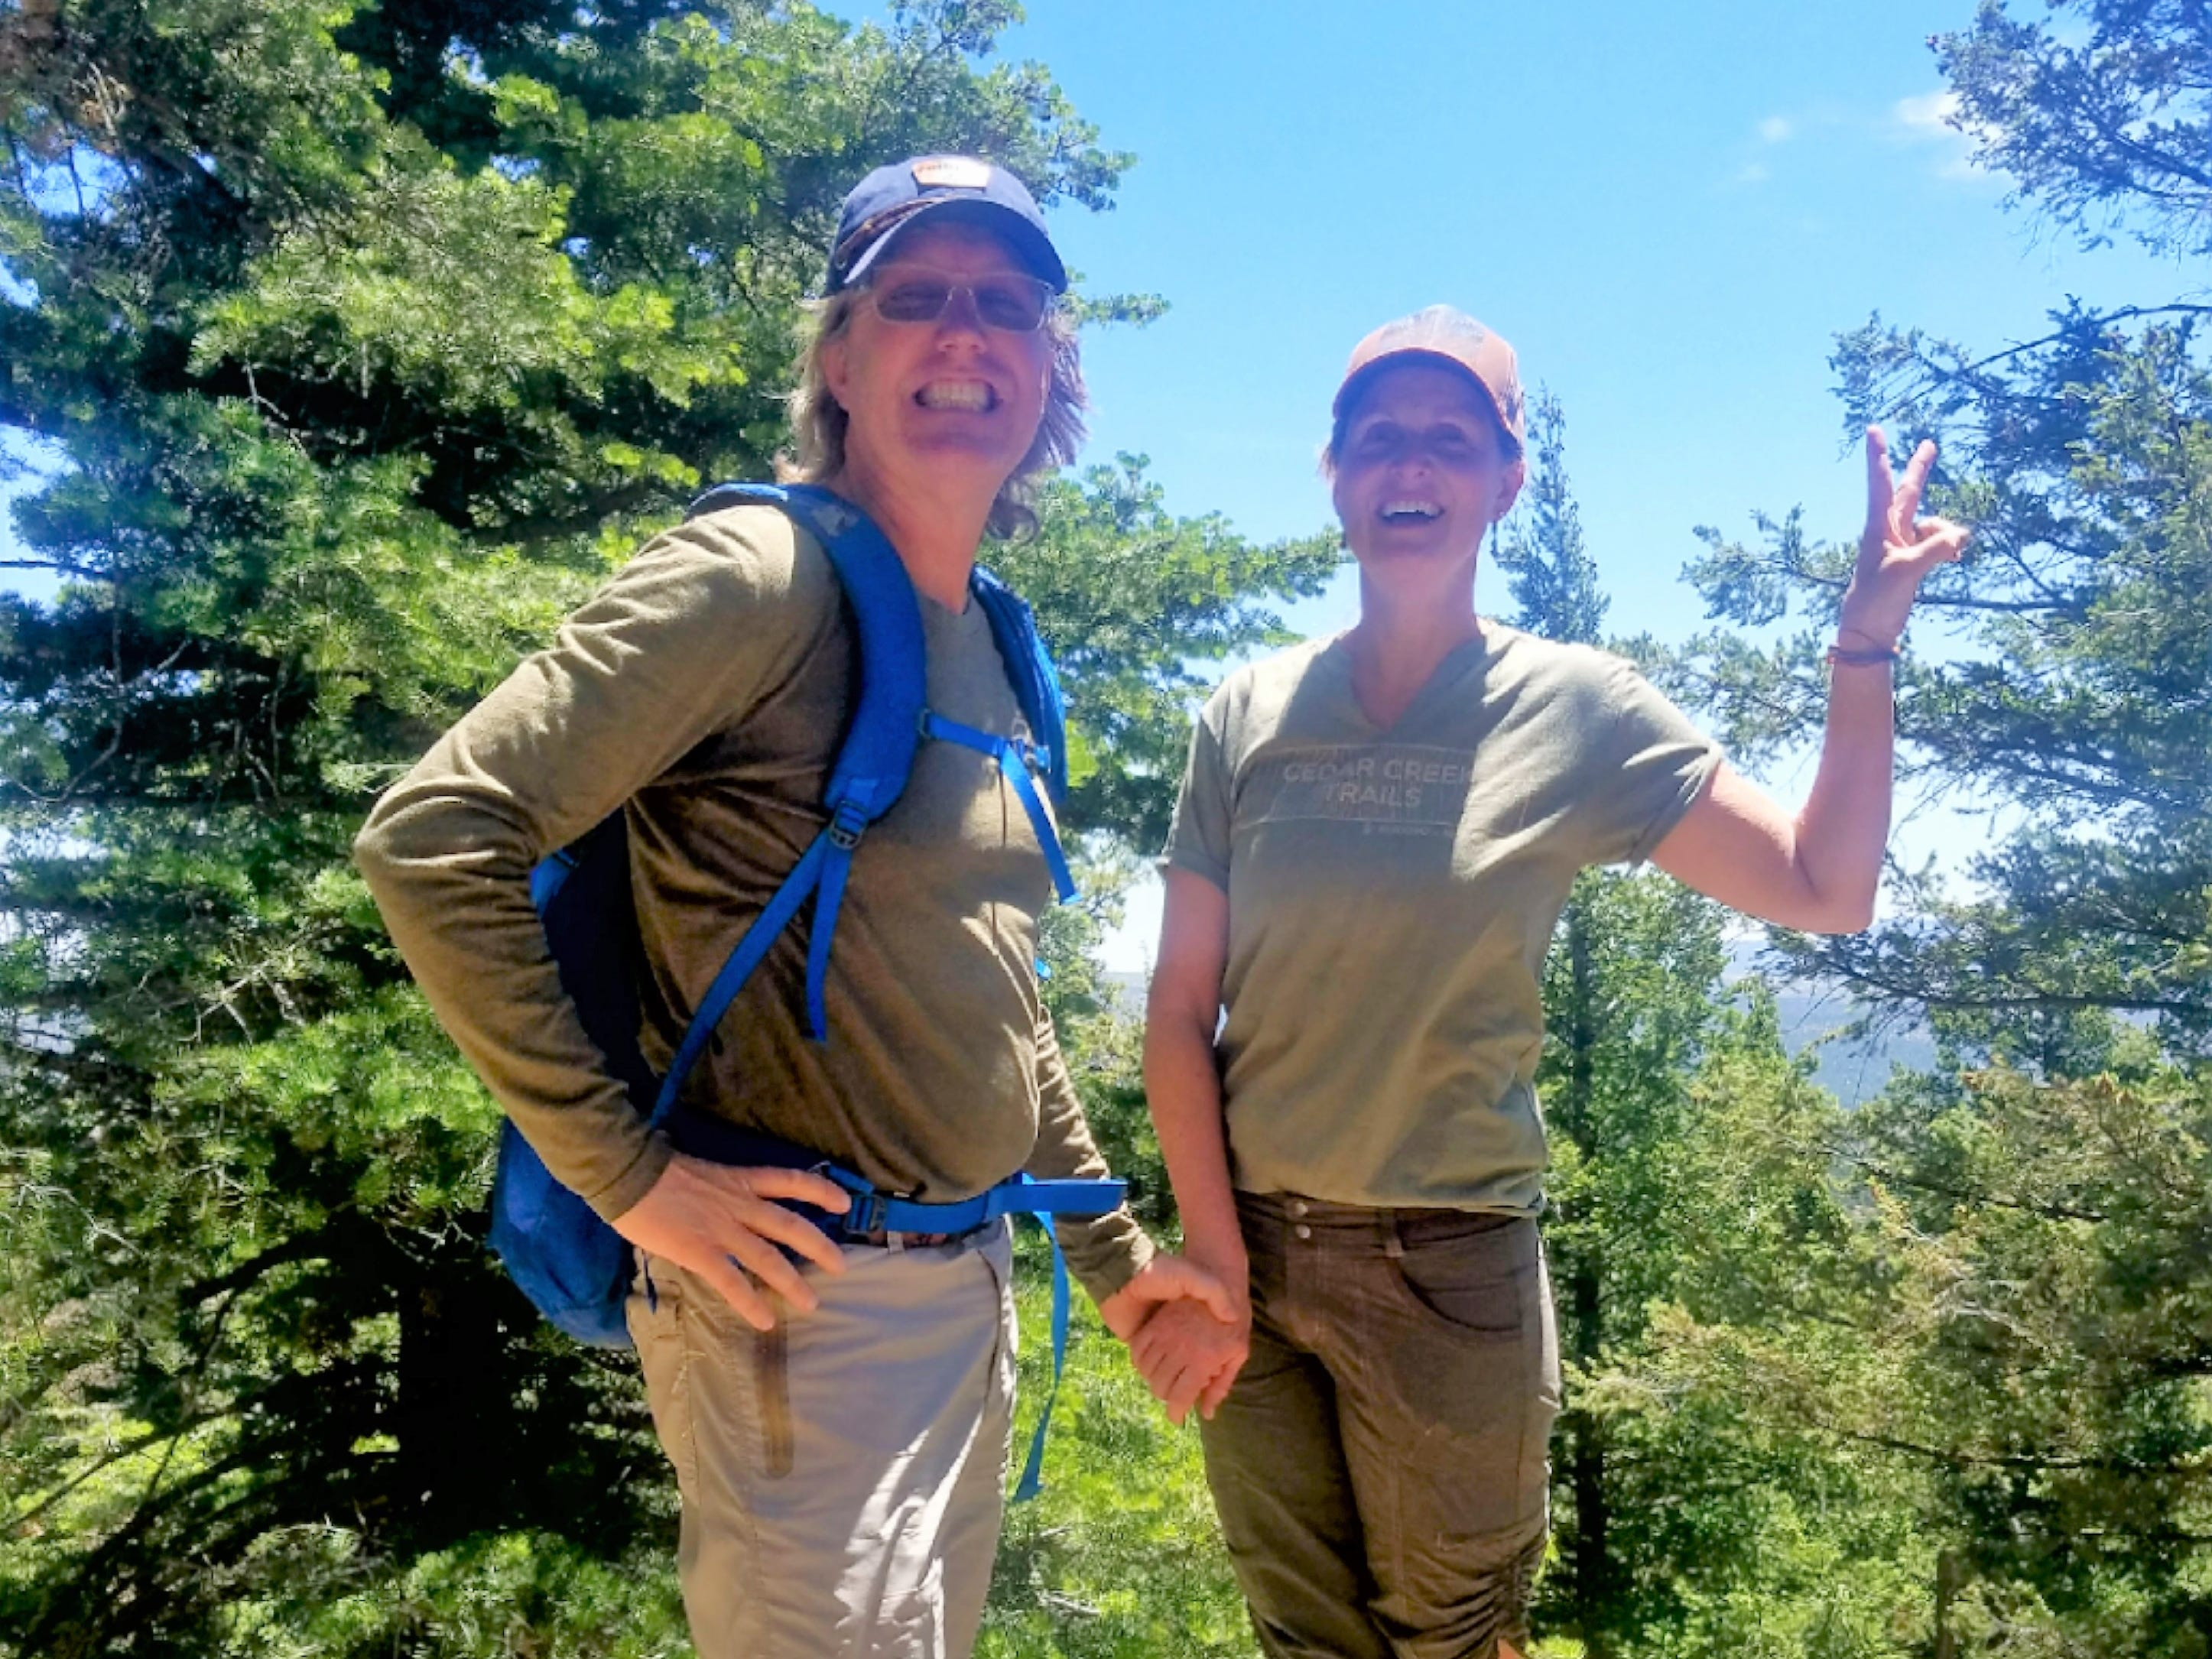 Happy Camper: Hiking, laughing, college memories but no wildlife